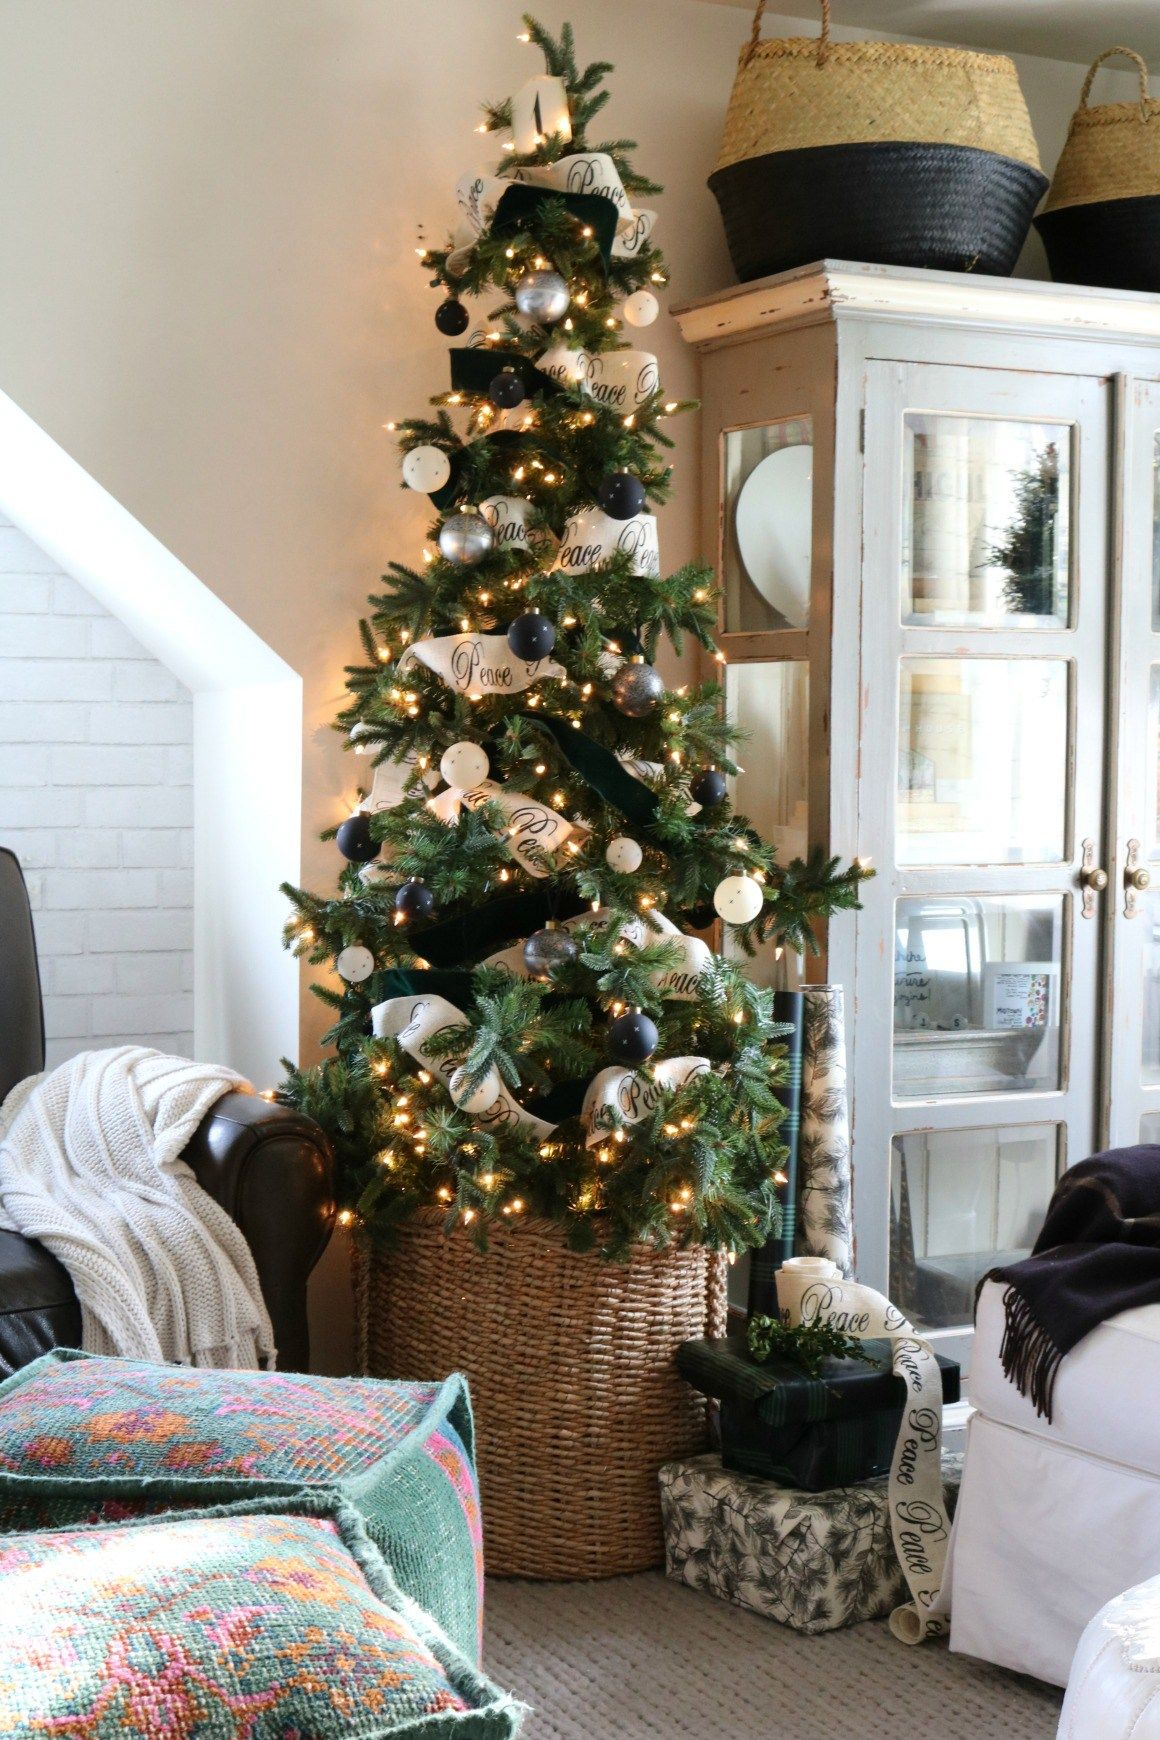 Top Home Decor Christmas Trends 2018 Nesting With Grace Christmas Trends Christmas 2018 Trends Christmas Decorations